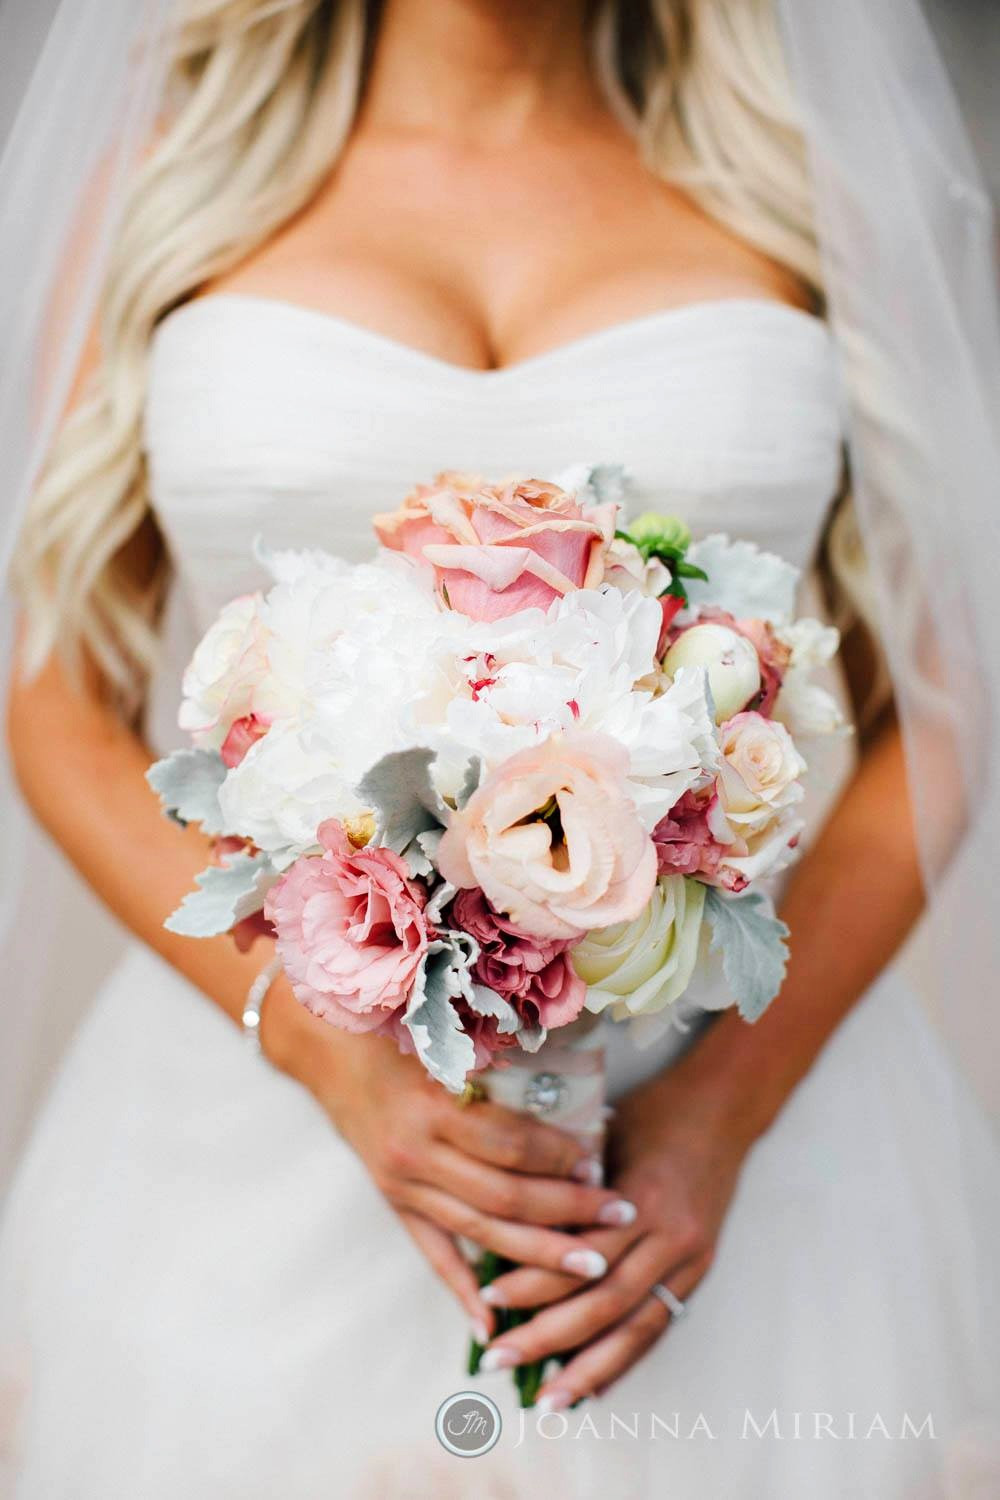 Bride holding Bridal Bouquet with cream and blush peony, garden roses and dusty miller